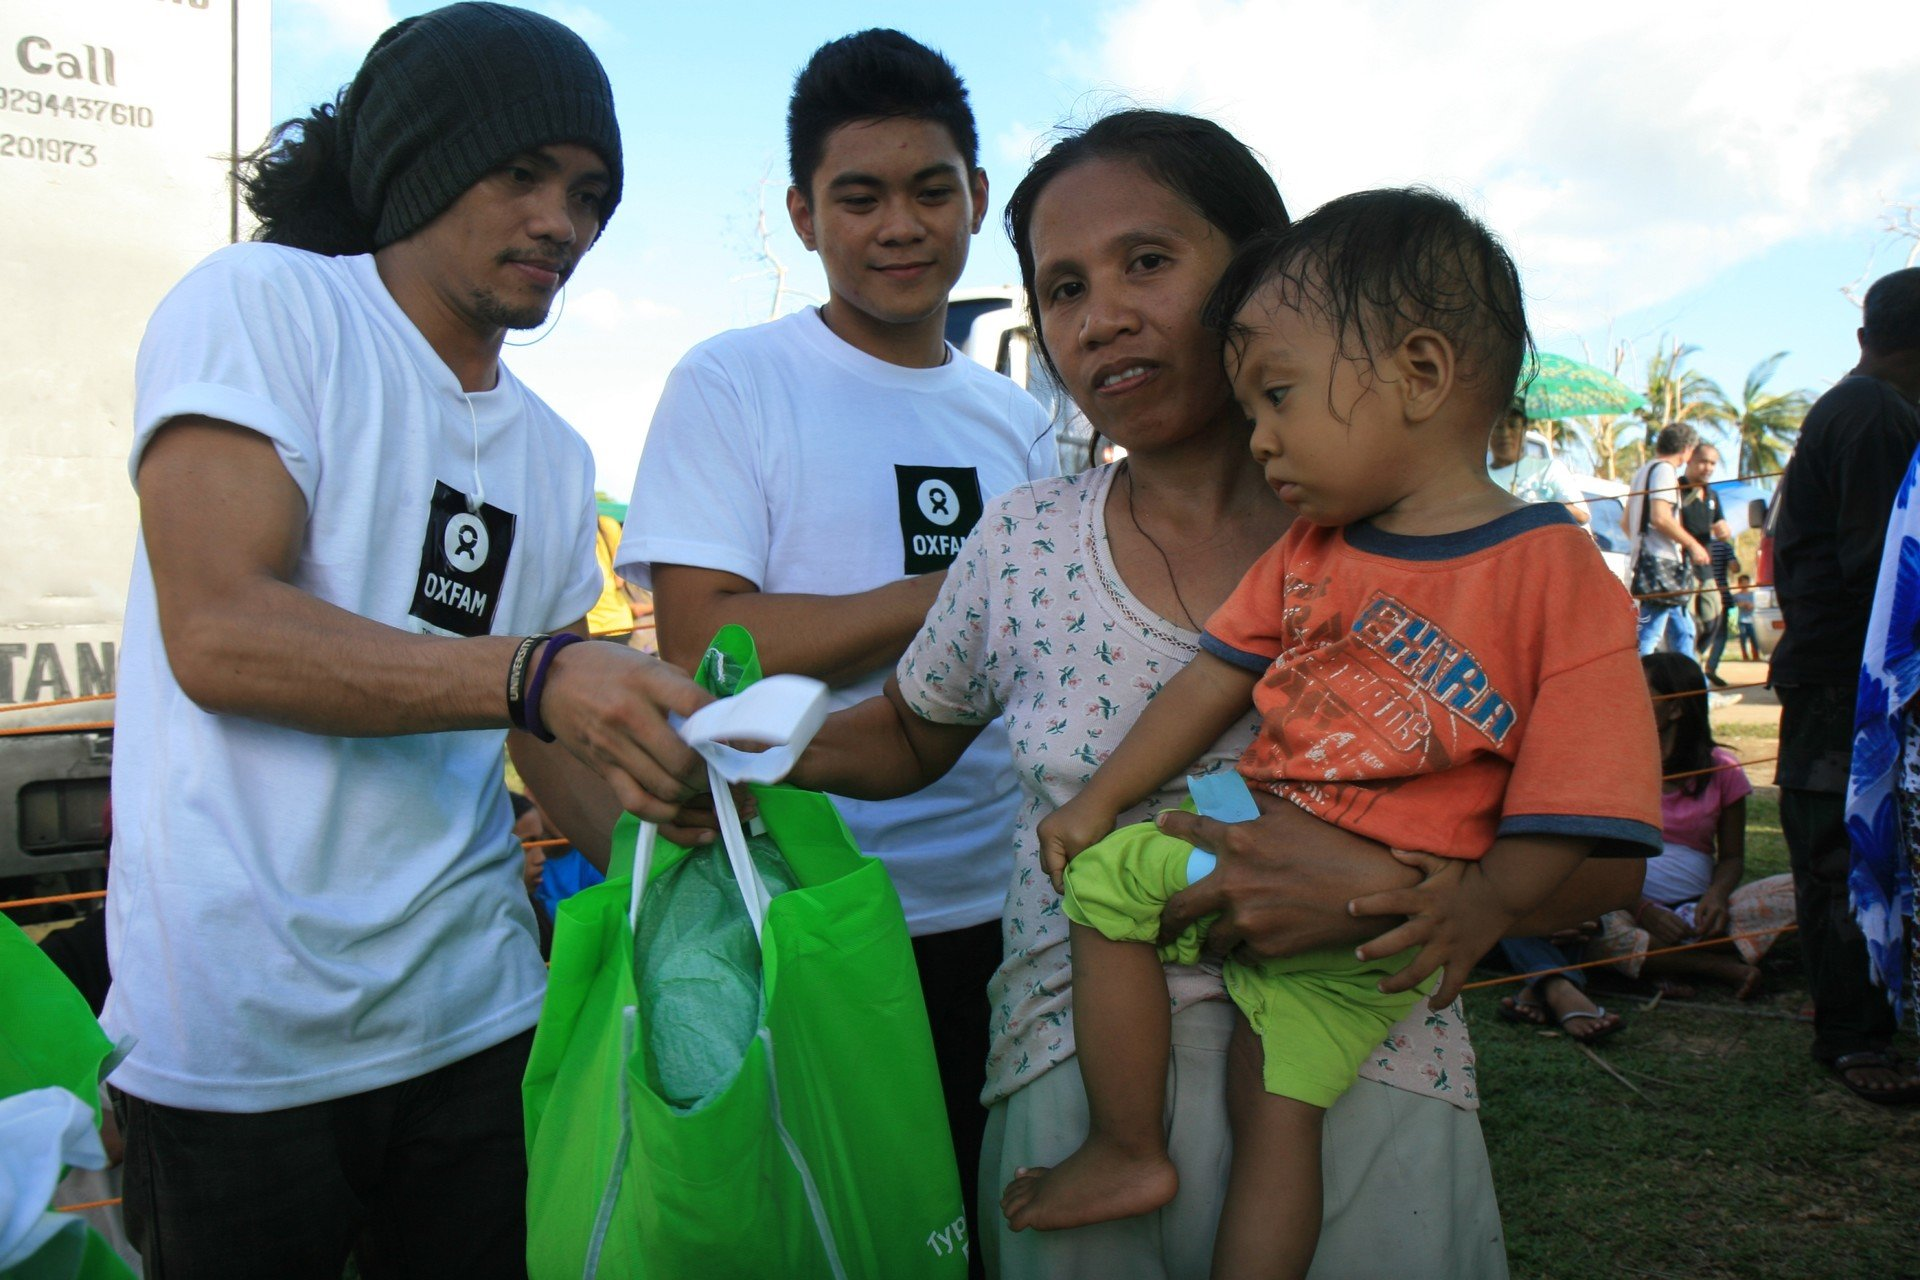 Dolor Moralde receiving a hygiene kit from Oxfam. The hygiene kit contains soap, a blanket, clean underwear and toothbrushes.